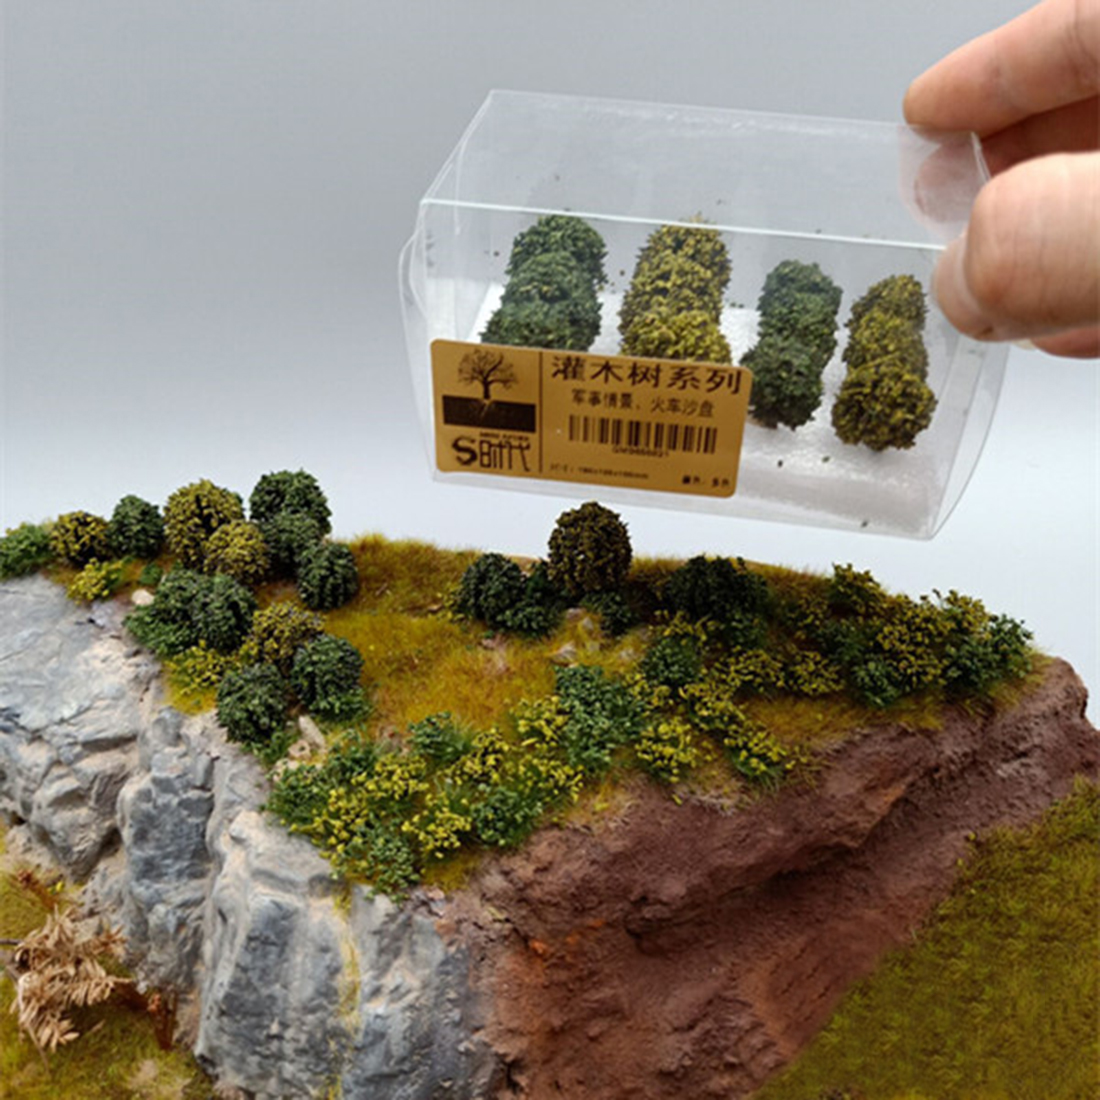 12Pcs Simulation Bush Tree Scene Model For 1:35/1:48/1:72/1:87 Scale Sand Table Model Building Kits